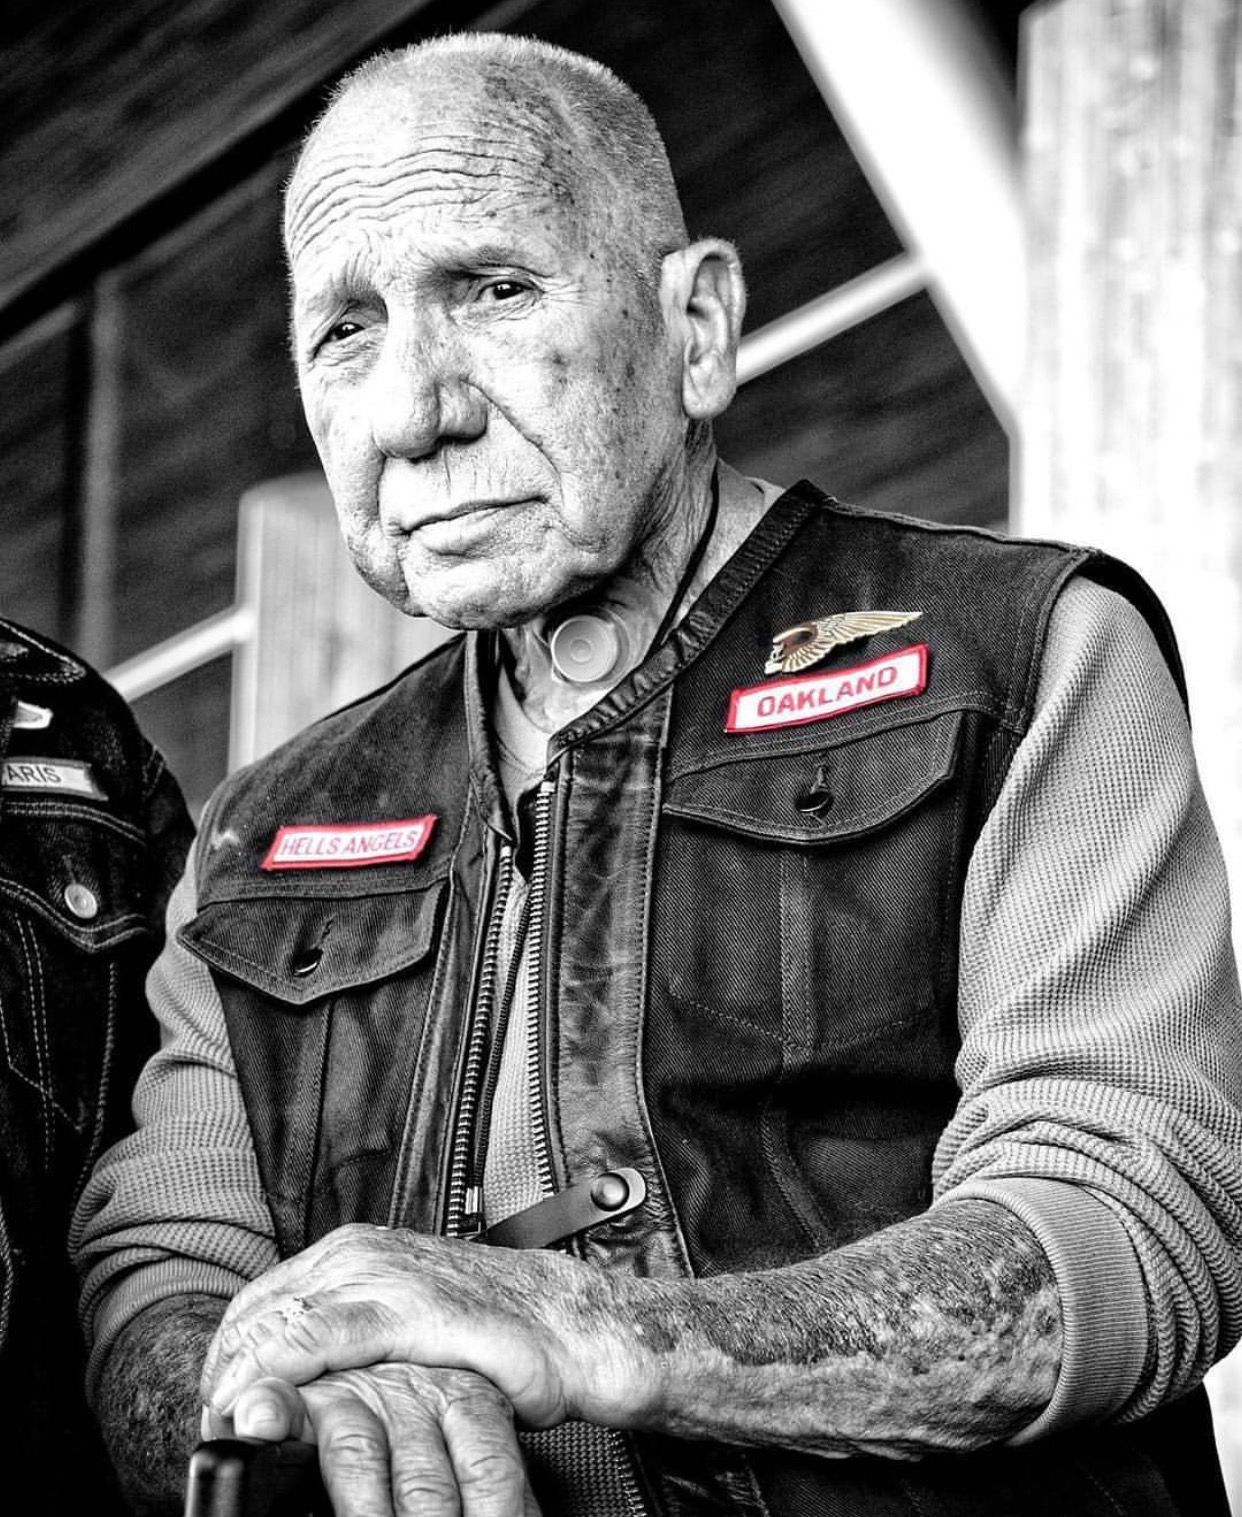 Sonny Barger, Hells Angels, Motorcycle Clubs